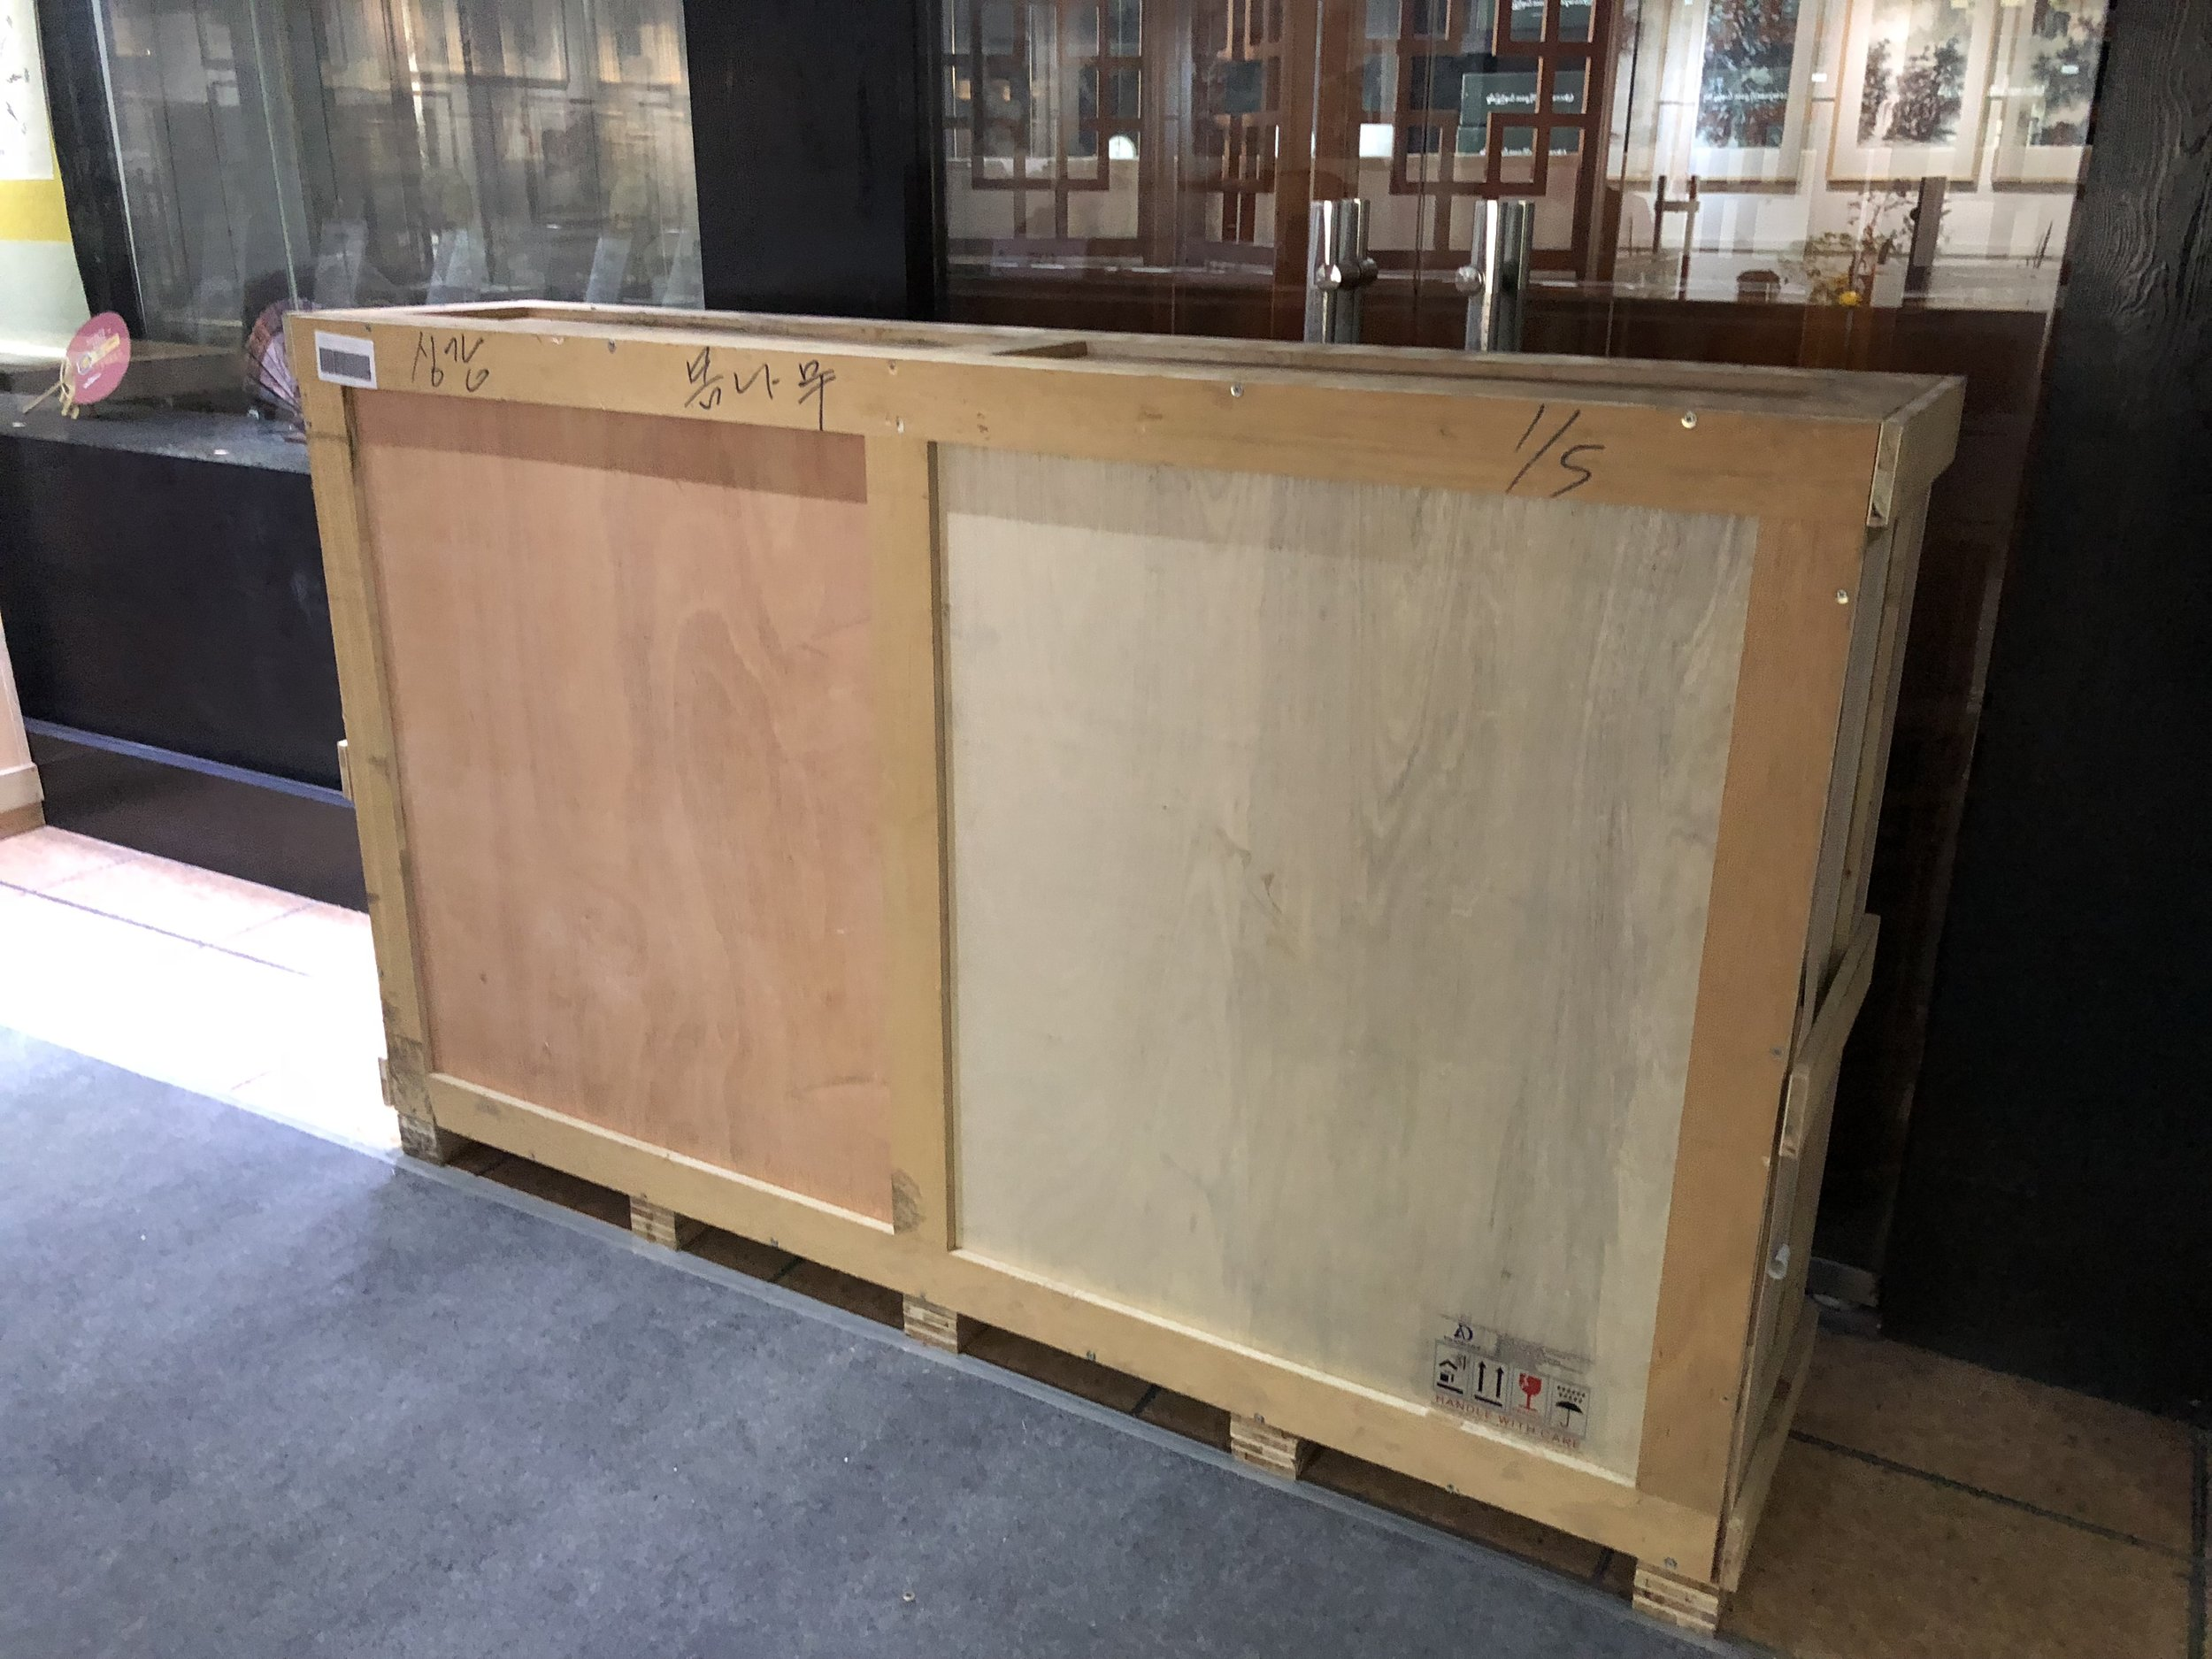 One of the crate! We were glad that all of the works arrived without any damages.